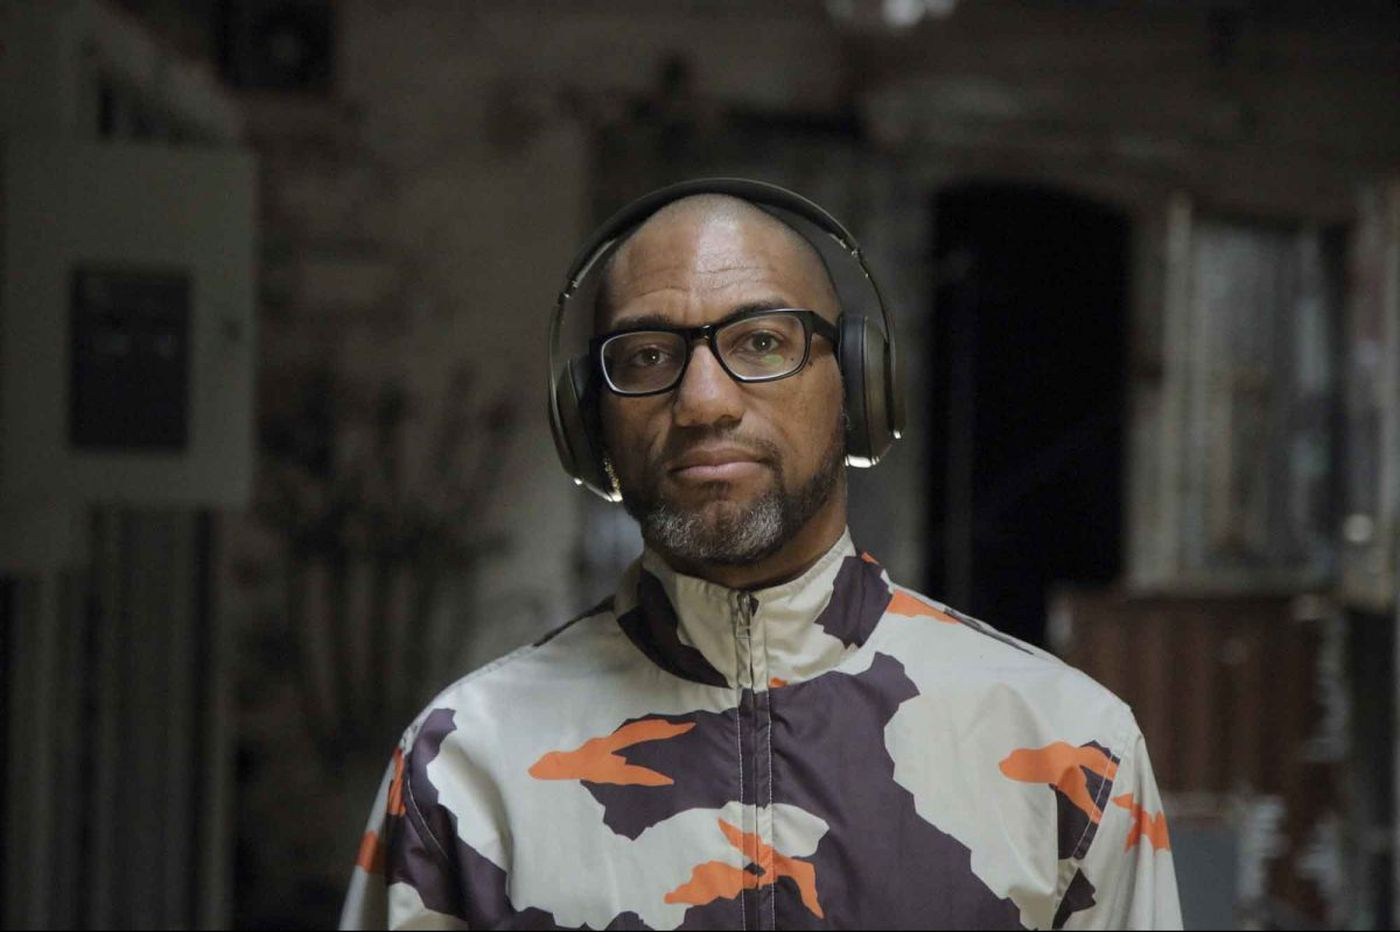 Why does Philly's world-renowned DJ King Britt insist on making his life so hard?